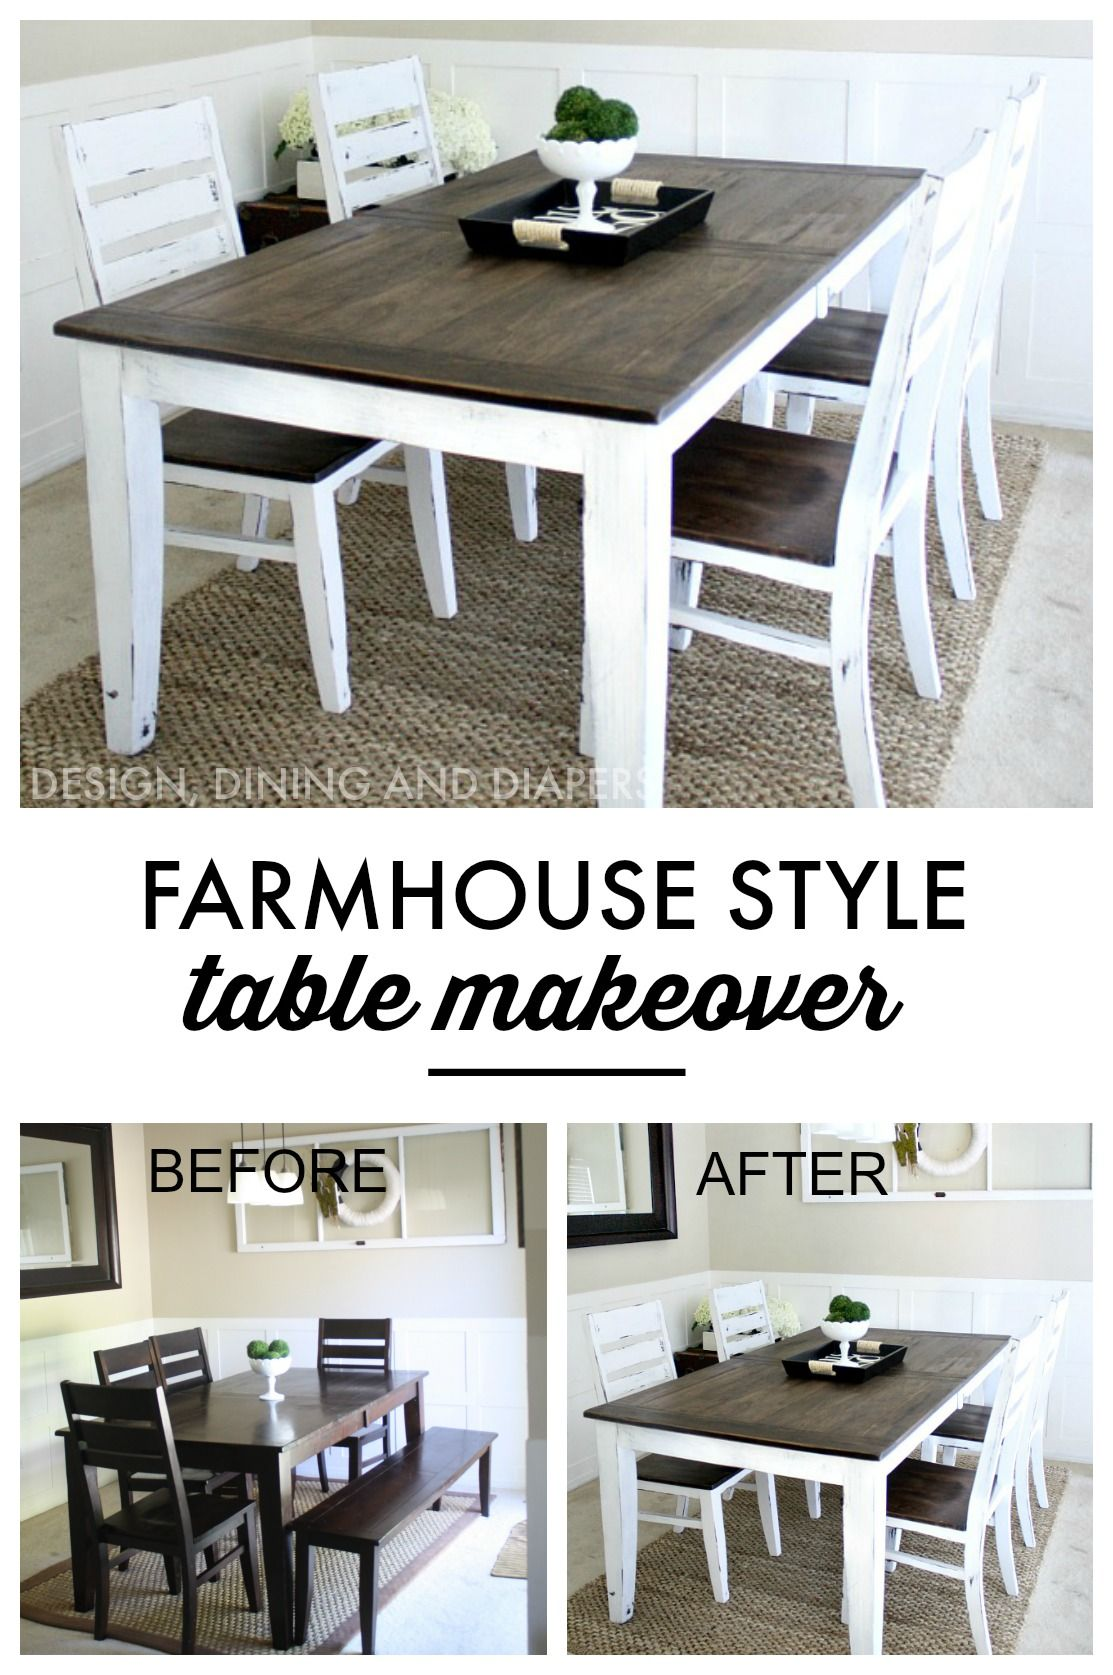 farmhouse table makeover learning farmhouse table and kitchens